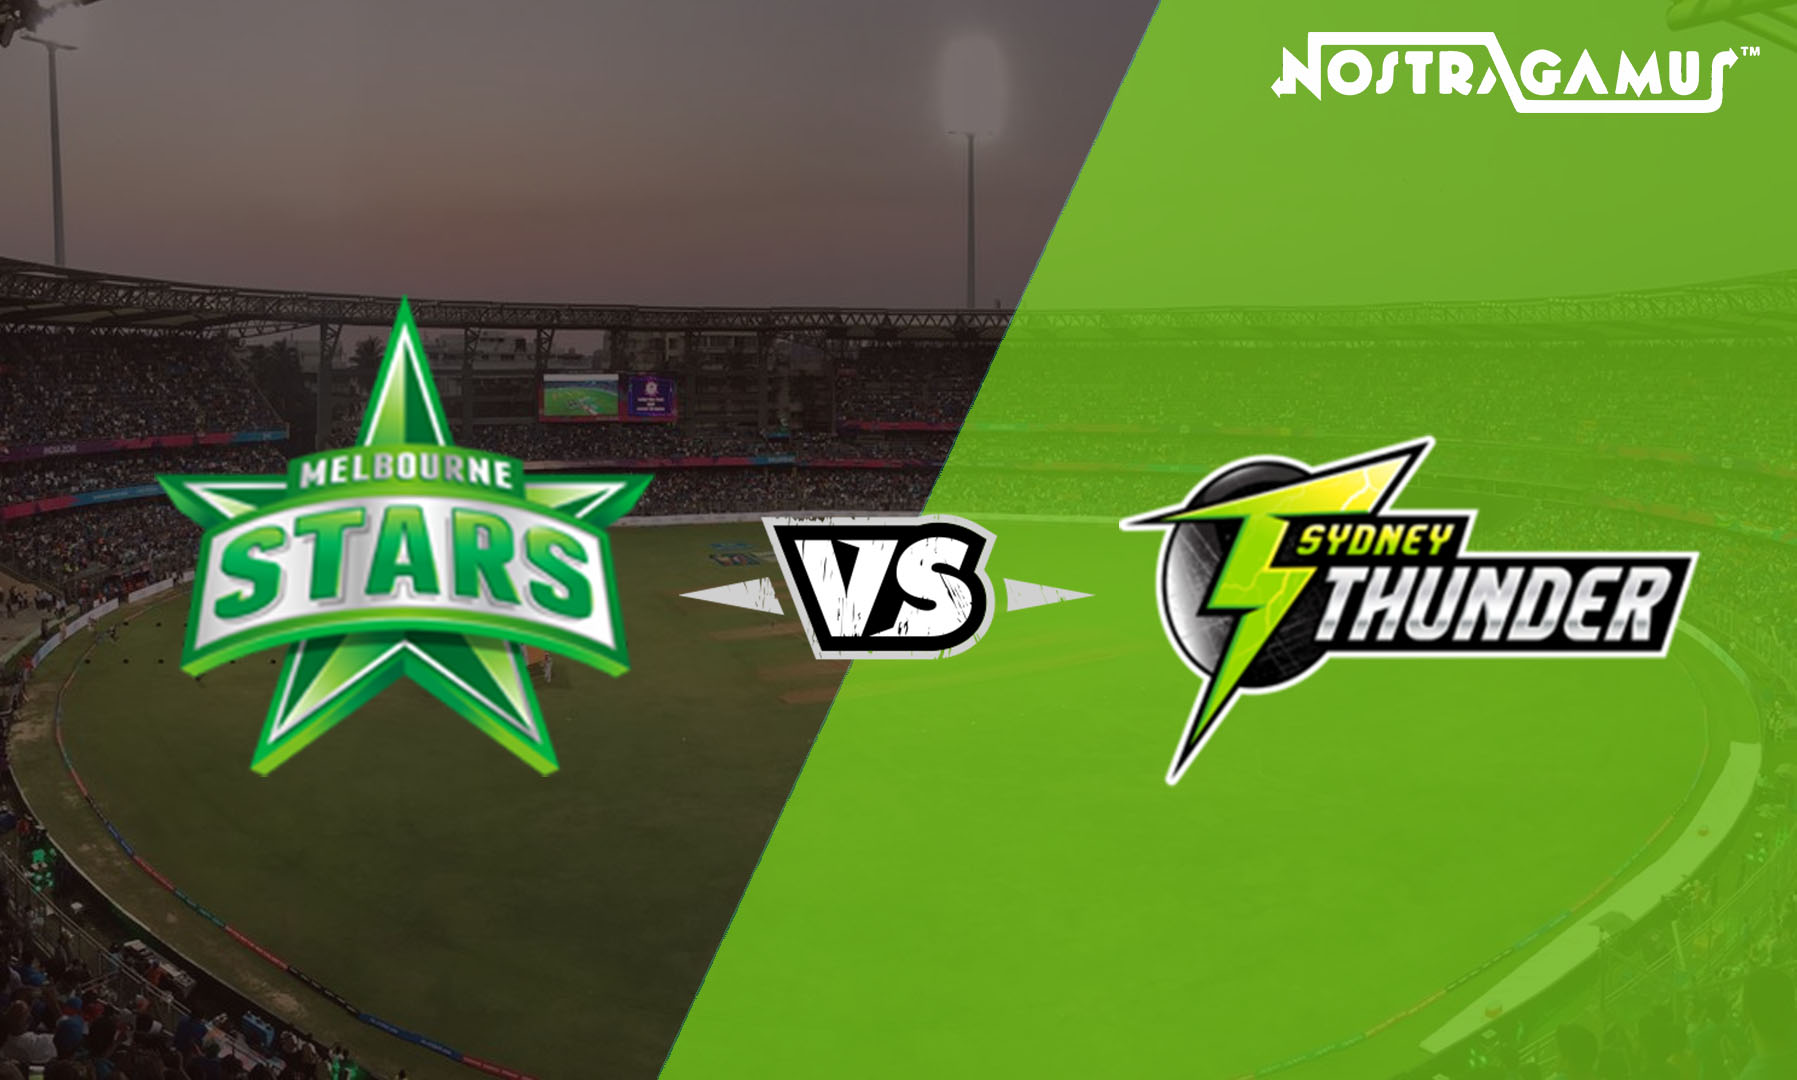 BBL 2019 Match Prediction: Sydney Thunder vs Melbourne Stars